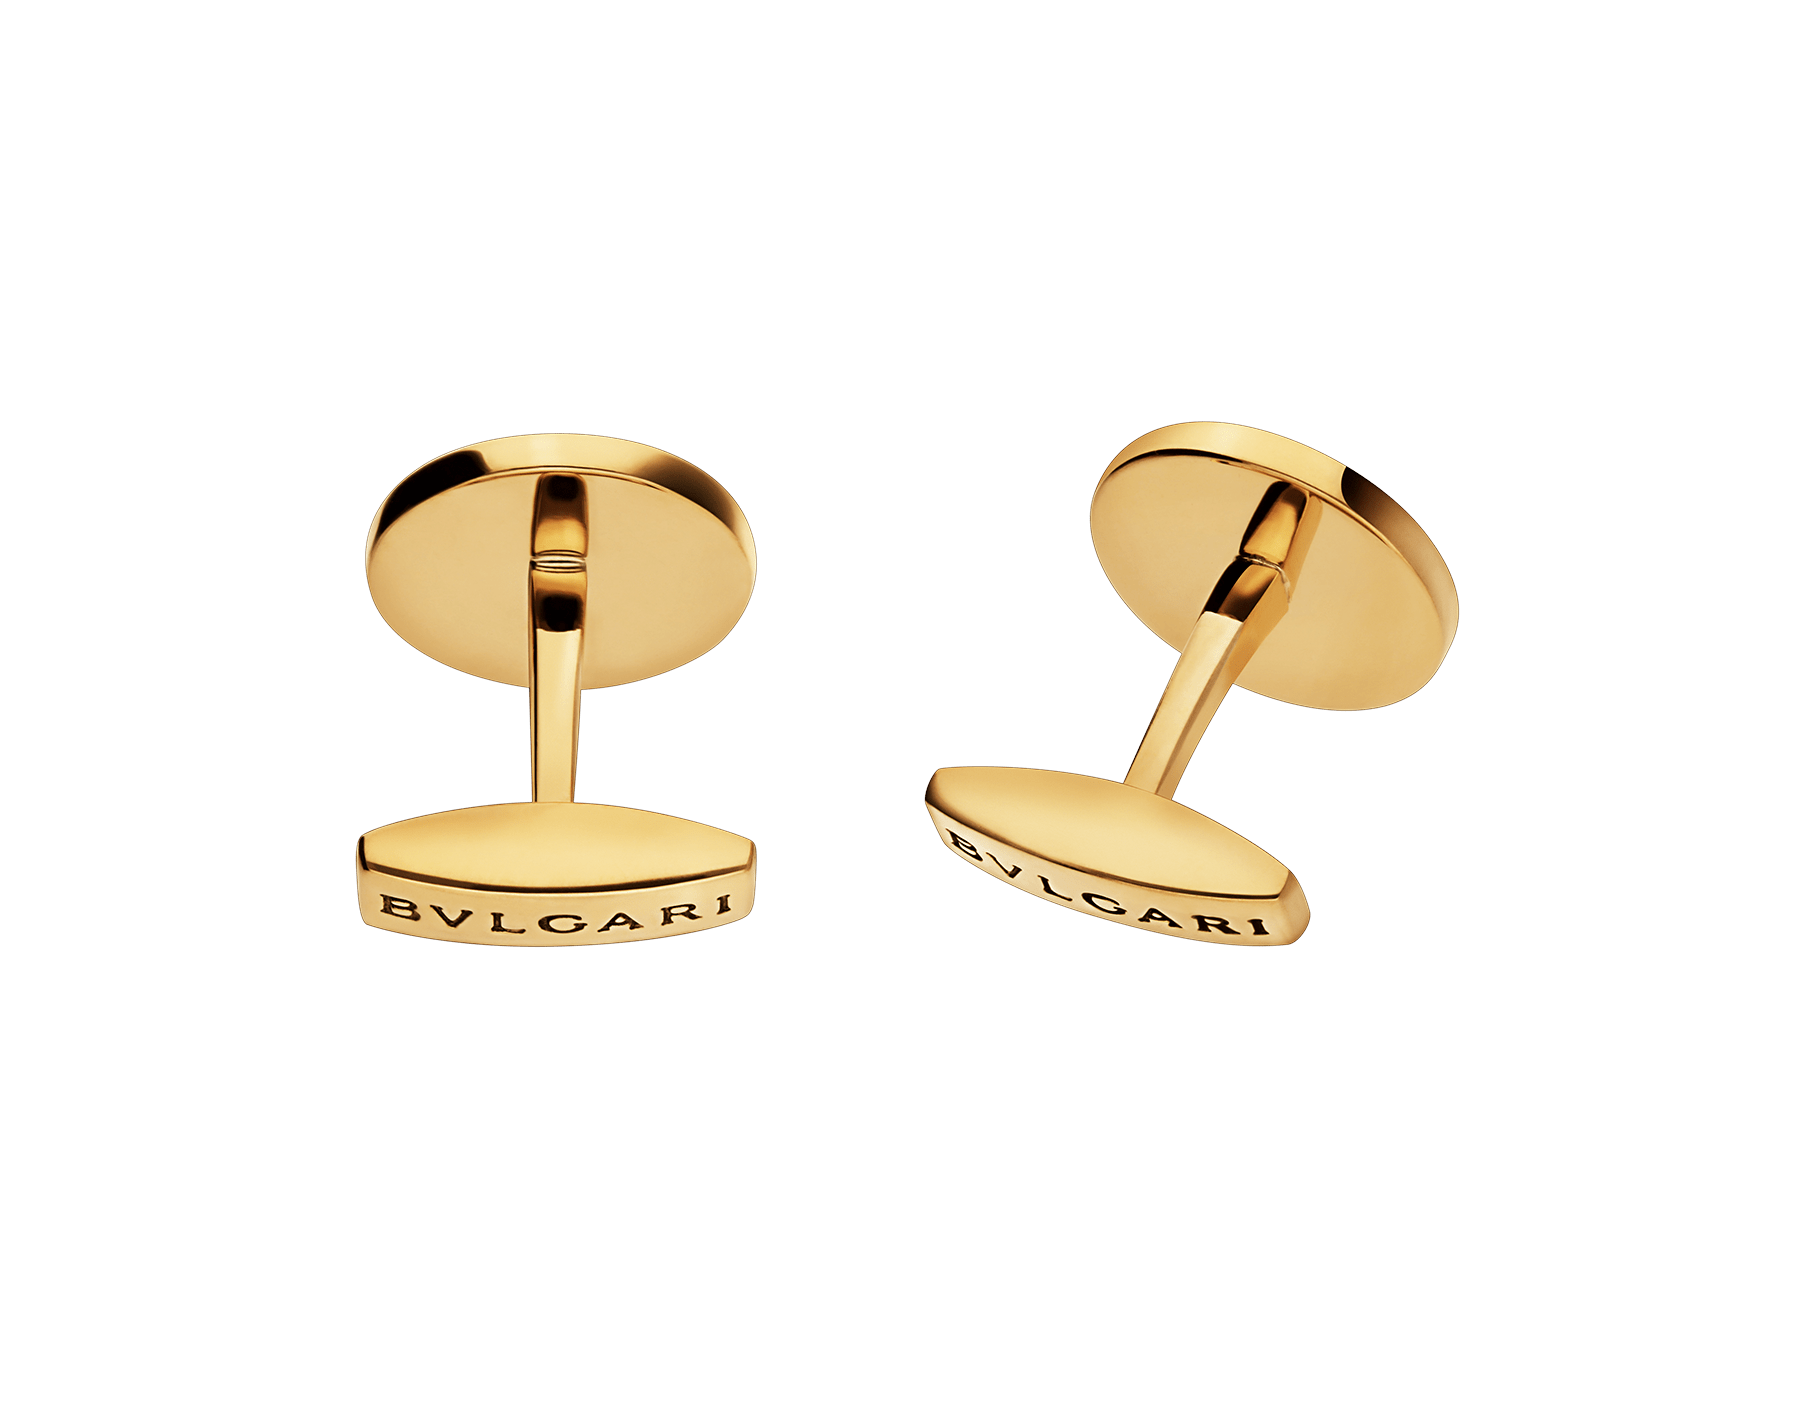 BVLGARI BVLGARI 18kt yellow gold cufflinks set with black onyx elements 322302 image 3